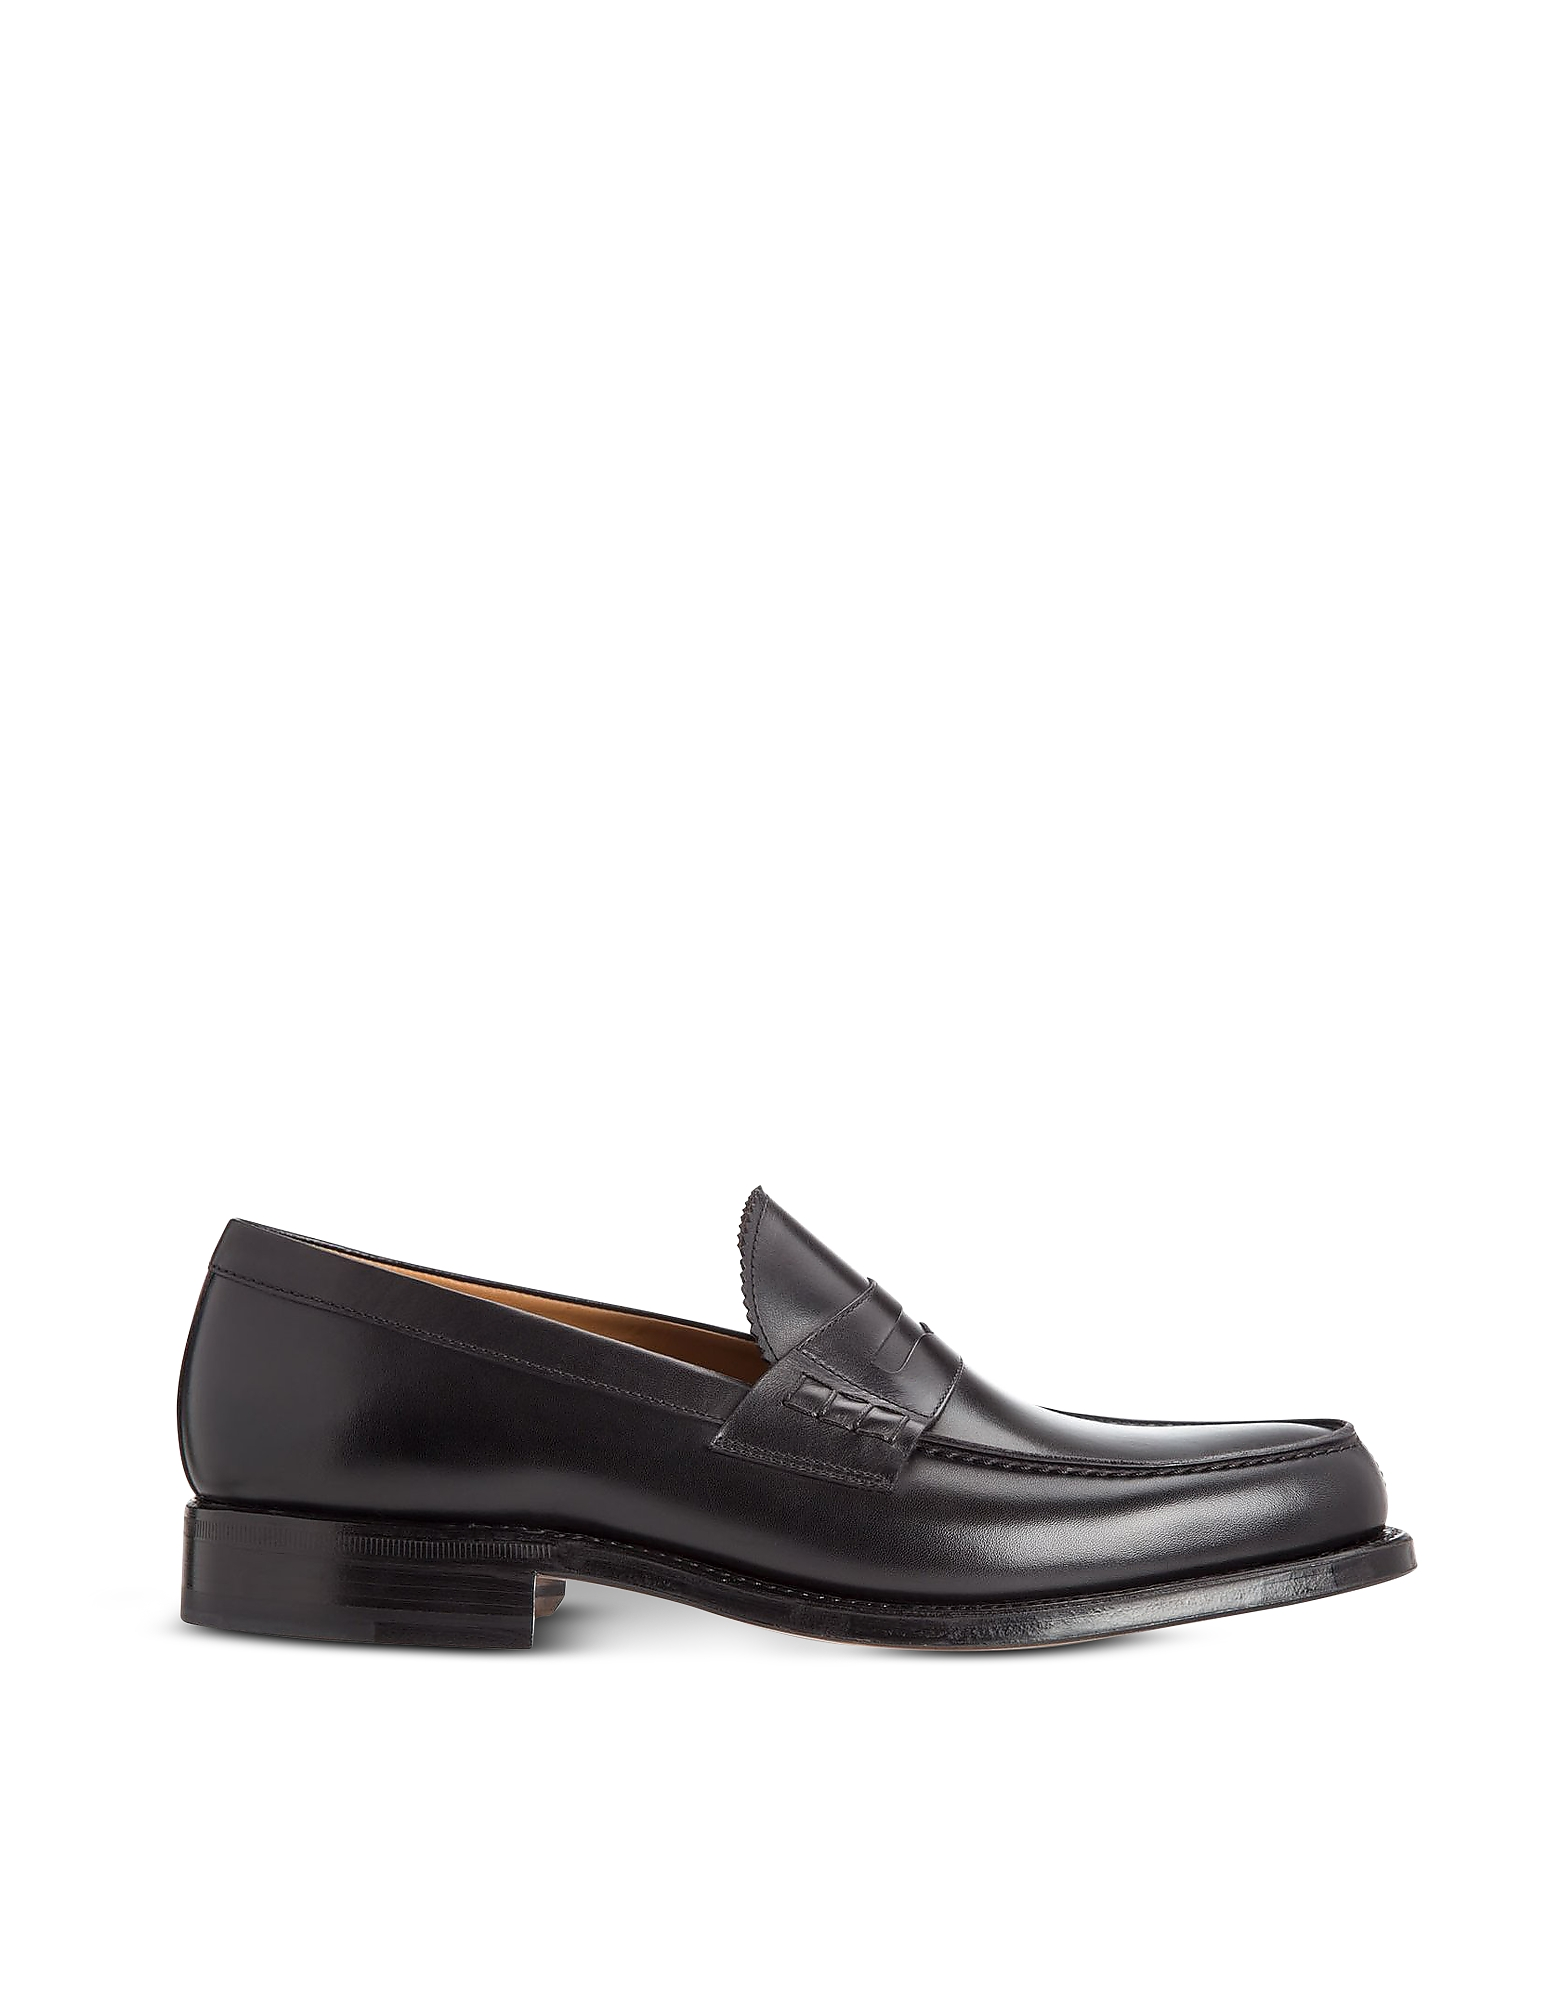 Moreschi Designer Shoes, Coventry Soft Calfskin Leather Loafers with Goodyear Sole